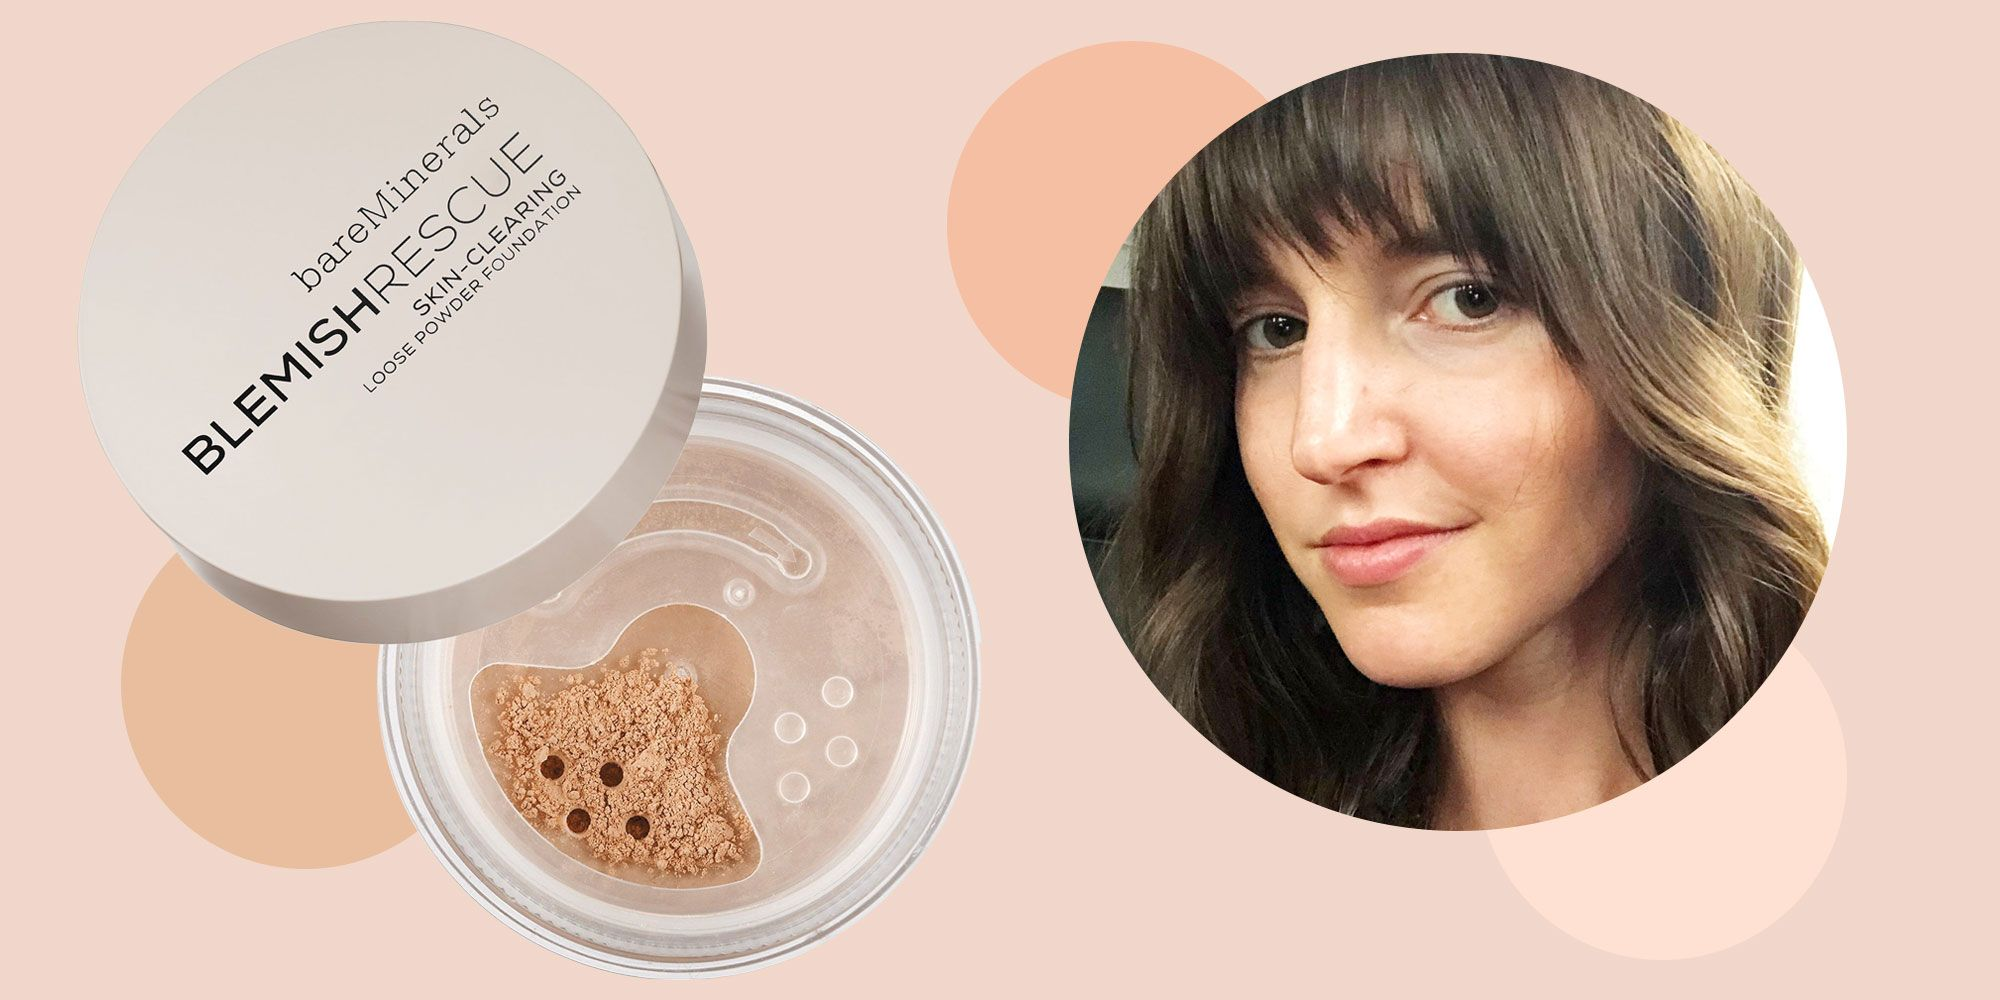 5 Mineral Foundation Makeup Options Your Sensitive Skin Needs